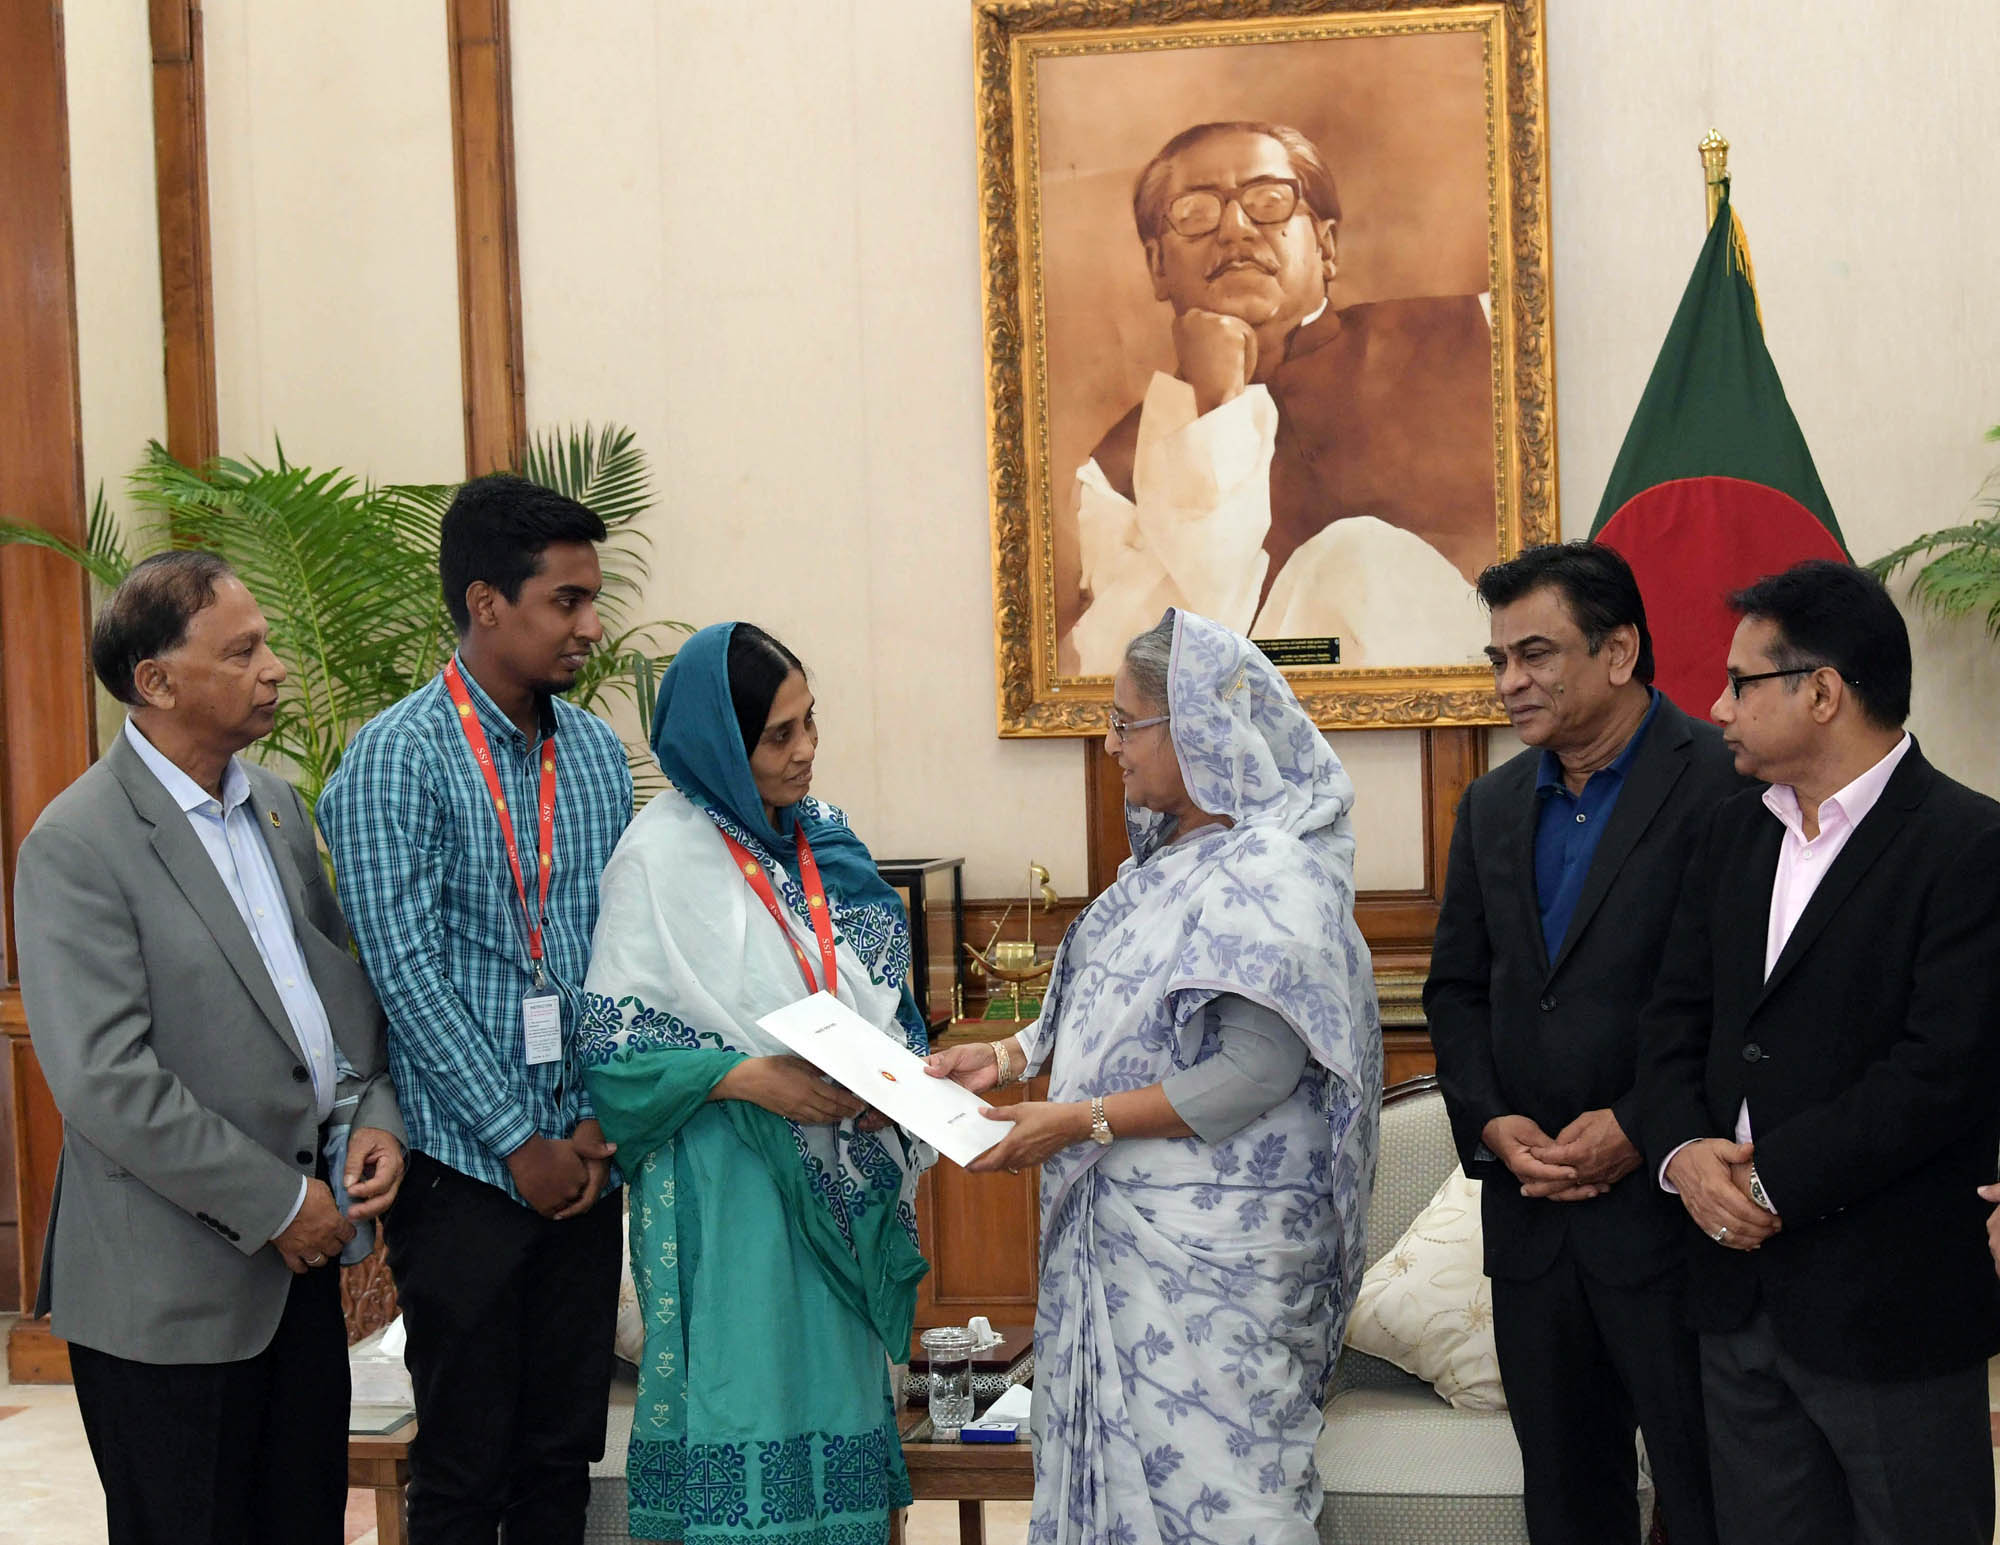 Prime Minister Sheikh Hasina handing over the permanent allotment letter of a flat to Fahmida Rahman, wife of former national hockey player late Zahidur Rahman Pushkin at the Gono Bhaban in the city on Thursday. President of BFF Kazi Salahuddin, Senior Vice-President of BFF Abdus Salam Murshady, Secretary of Youth and Sports Affairs of Bangladesh Awami League Harun-ur-Rashid were present at the time.